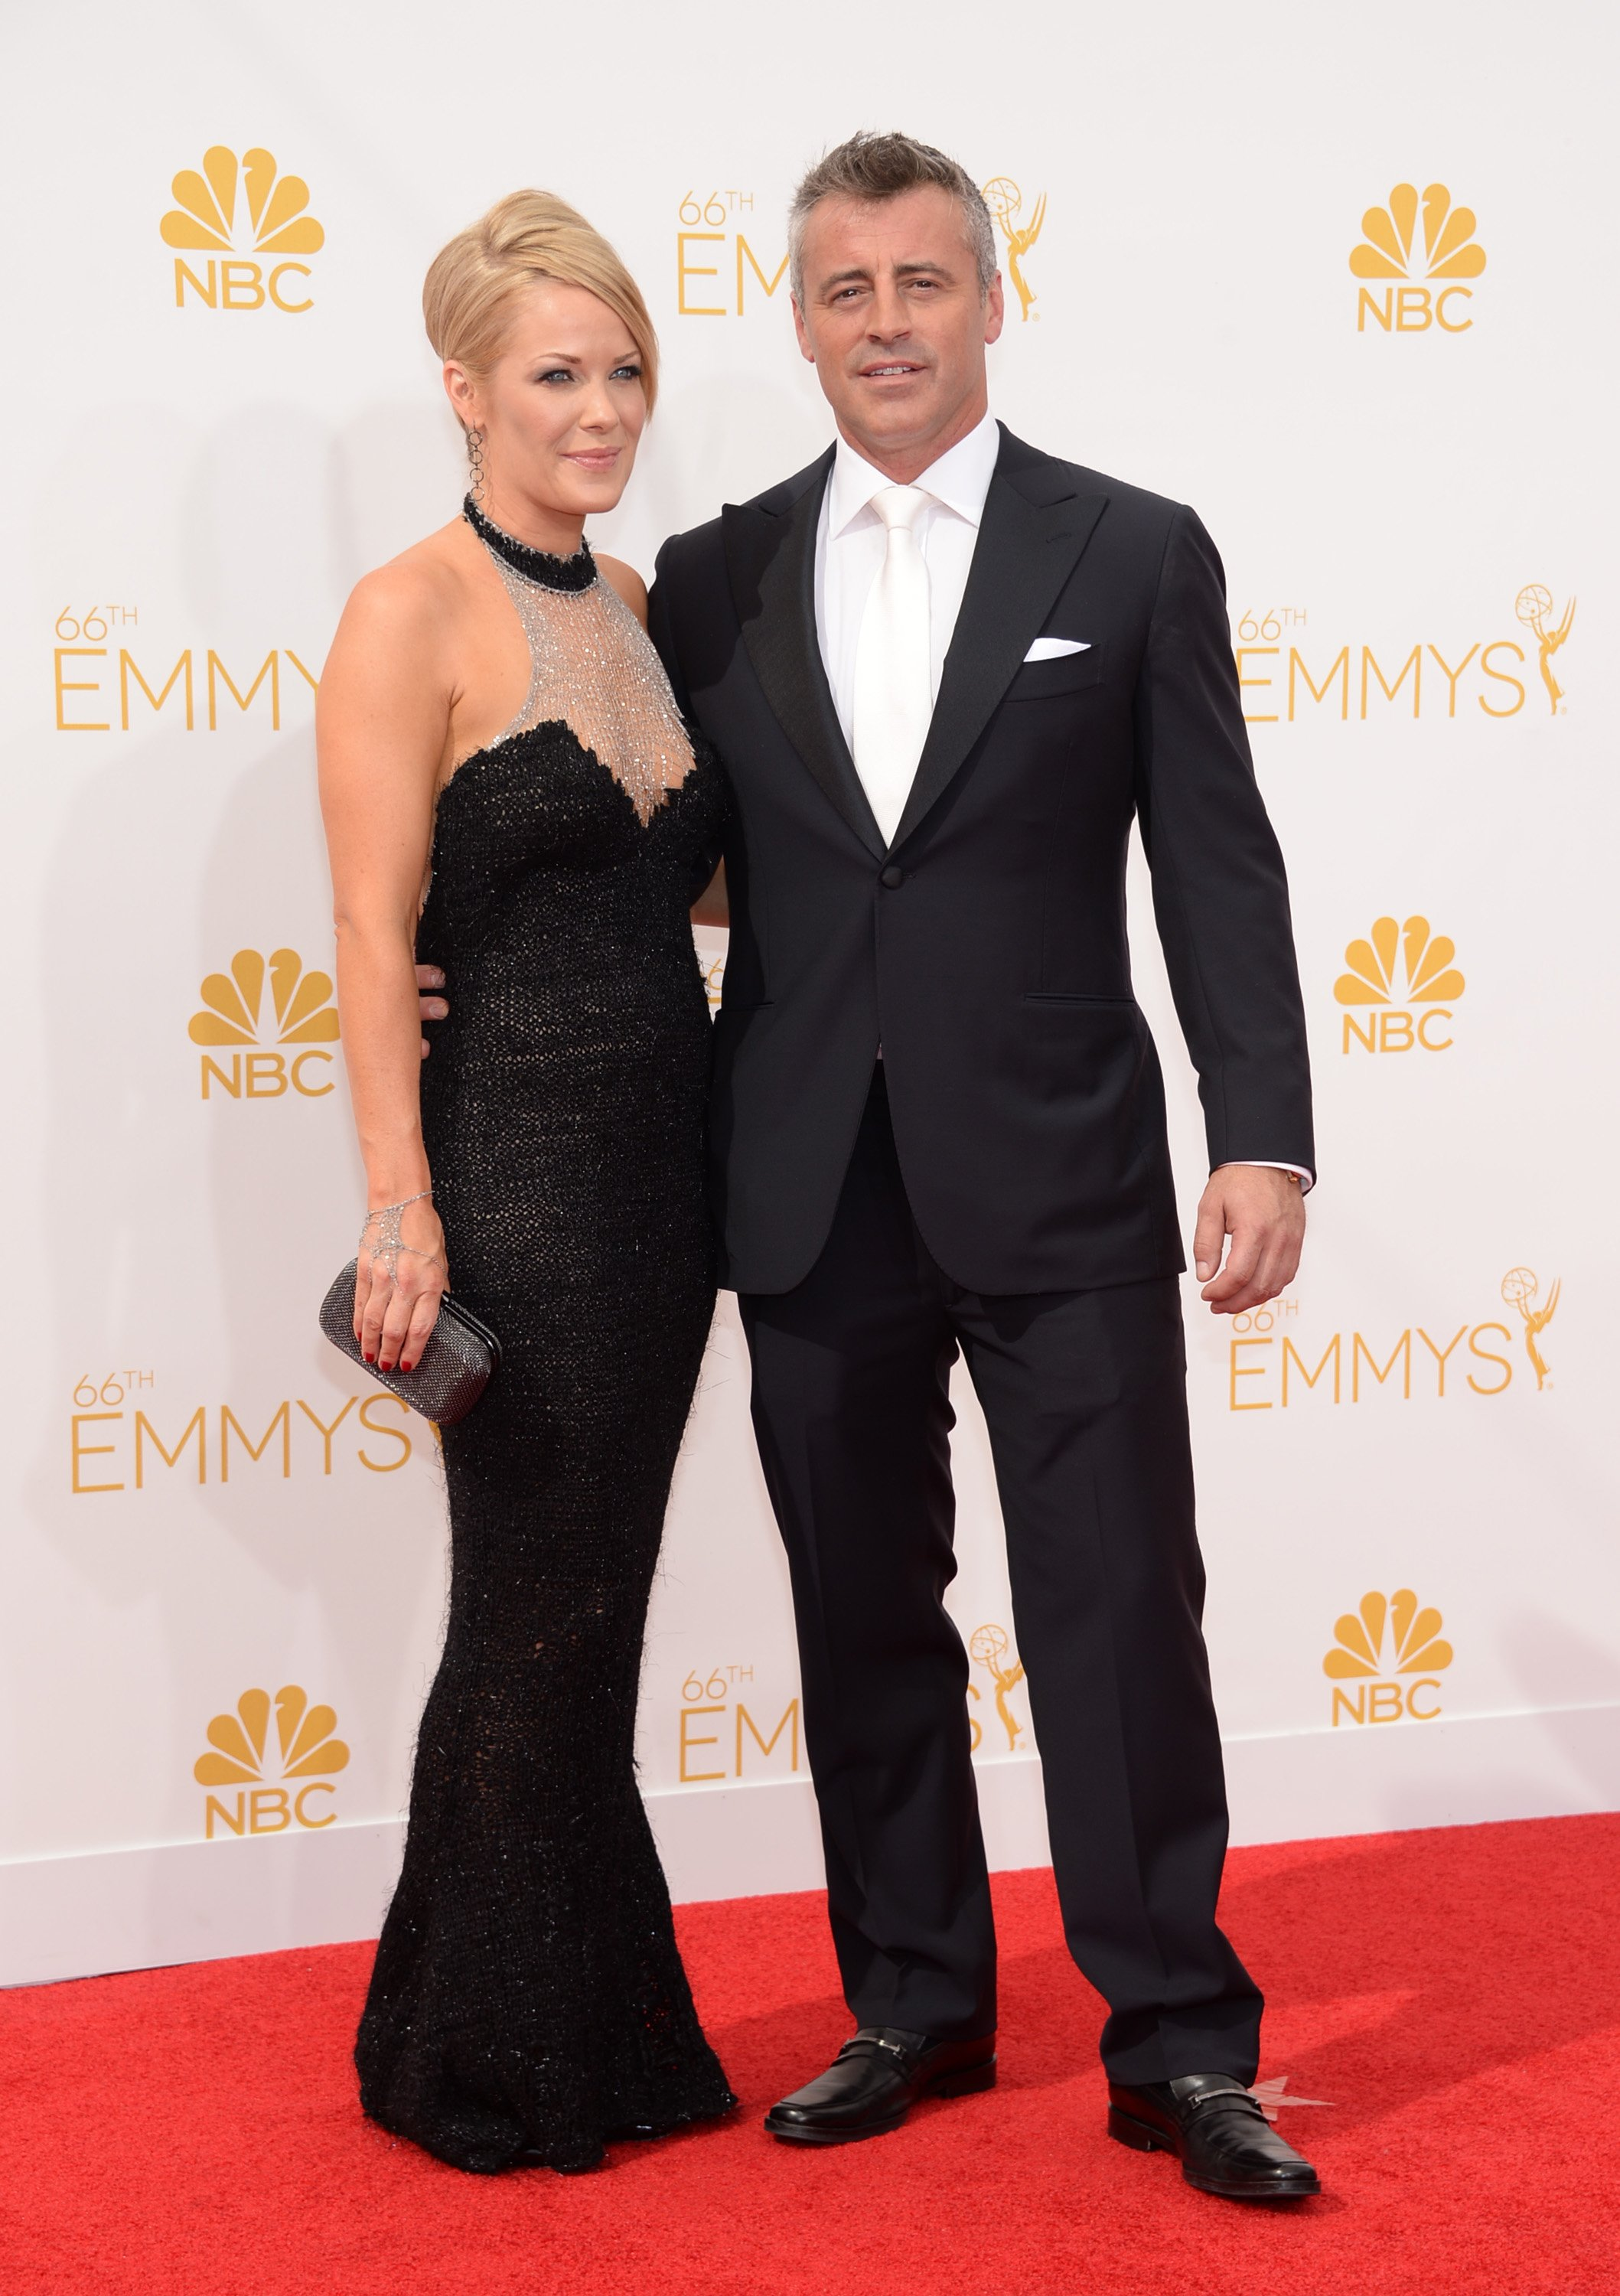 Melissa Mcknight, left, and Matt LeBlanc arrive at the 66th Primetime Emmy Awards at the Nokia Theatre L.A. Live on Monday, Aug. 25, 2014, in Los Angeles.